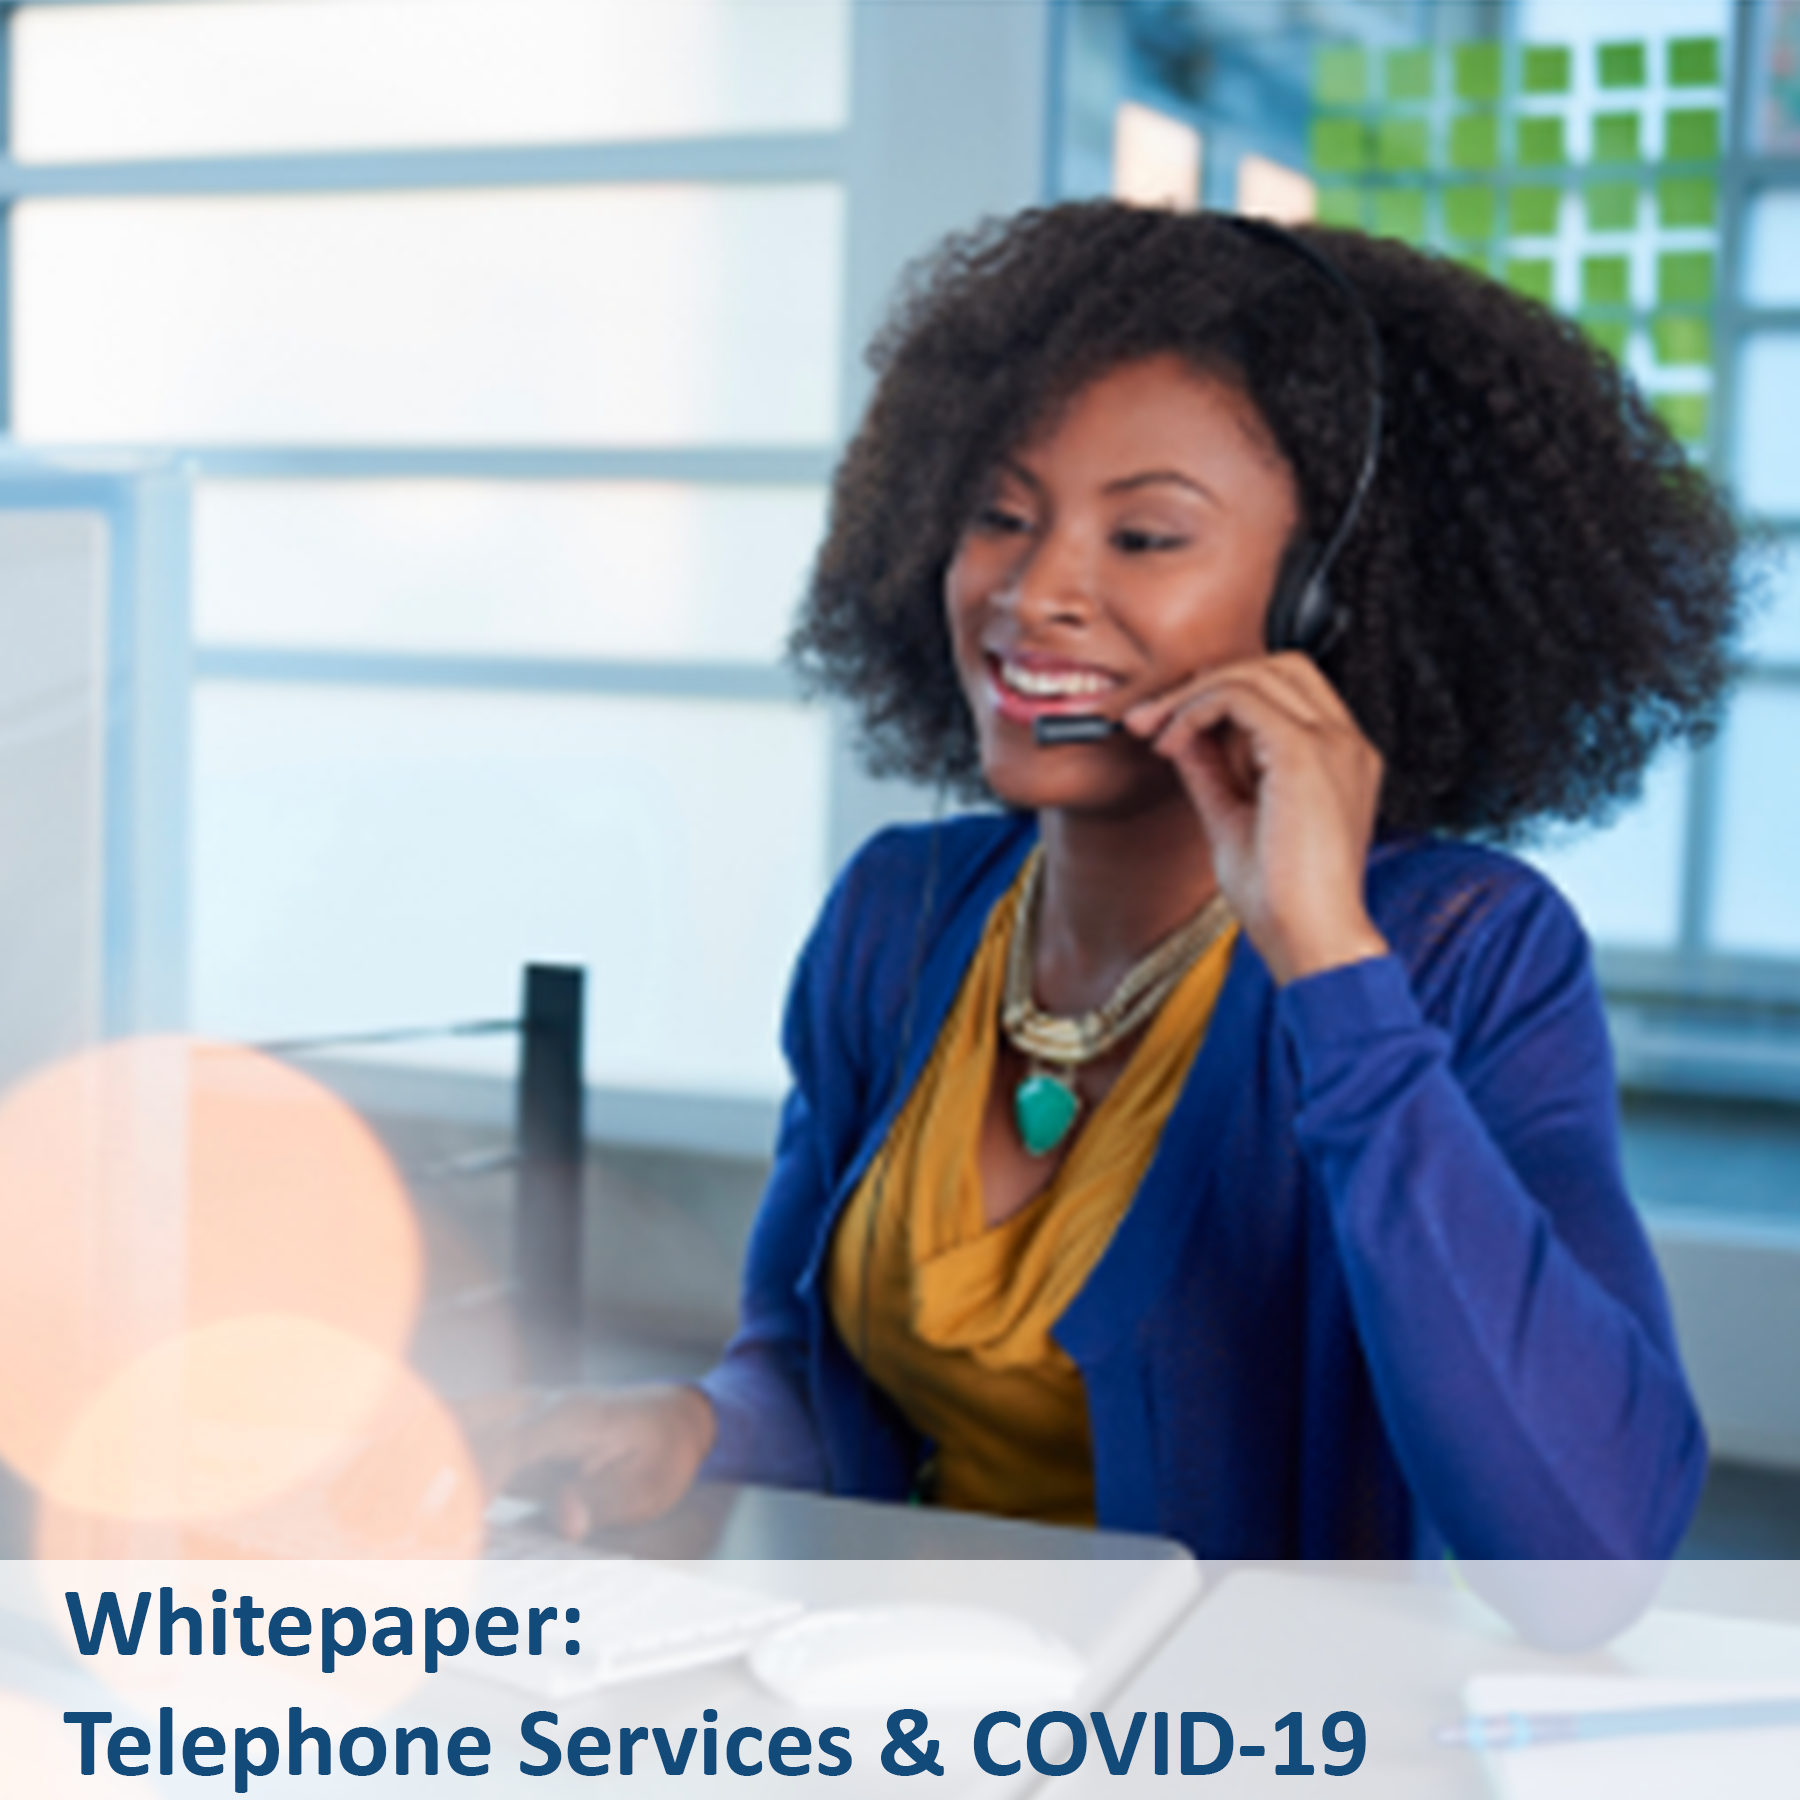 Whitepaper - Telephone Services